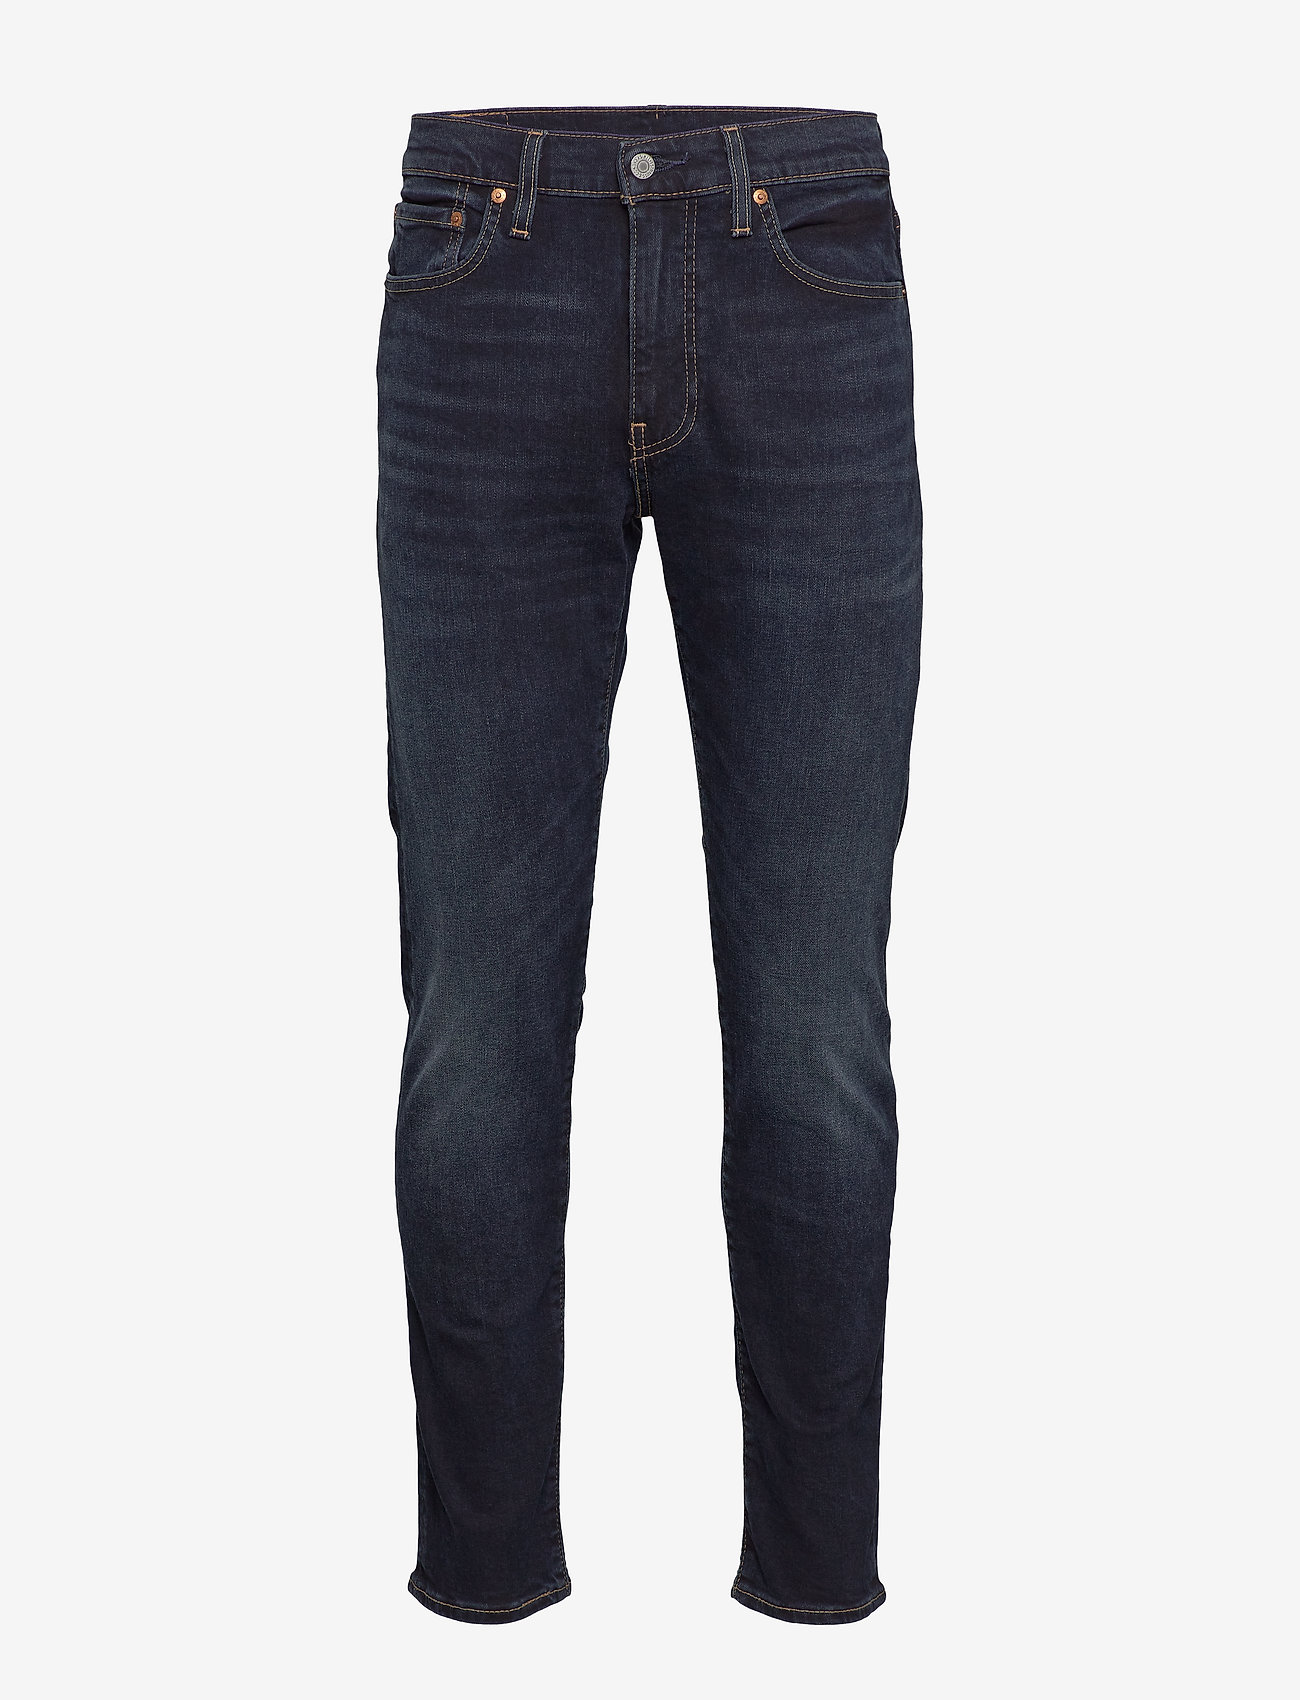 LEVI´S Men - 512 SLIM TAPER SHAKE THE BOAT - slim jeans - dark indigo - worn in - 0